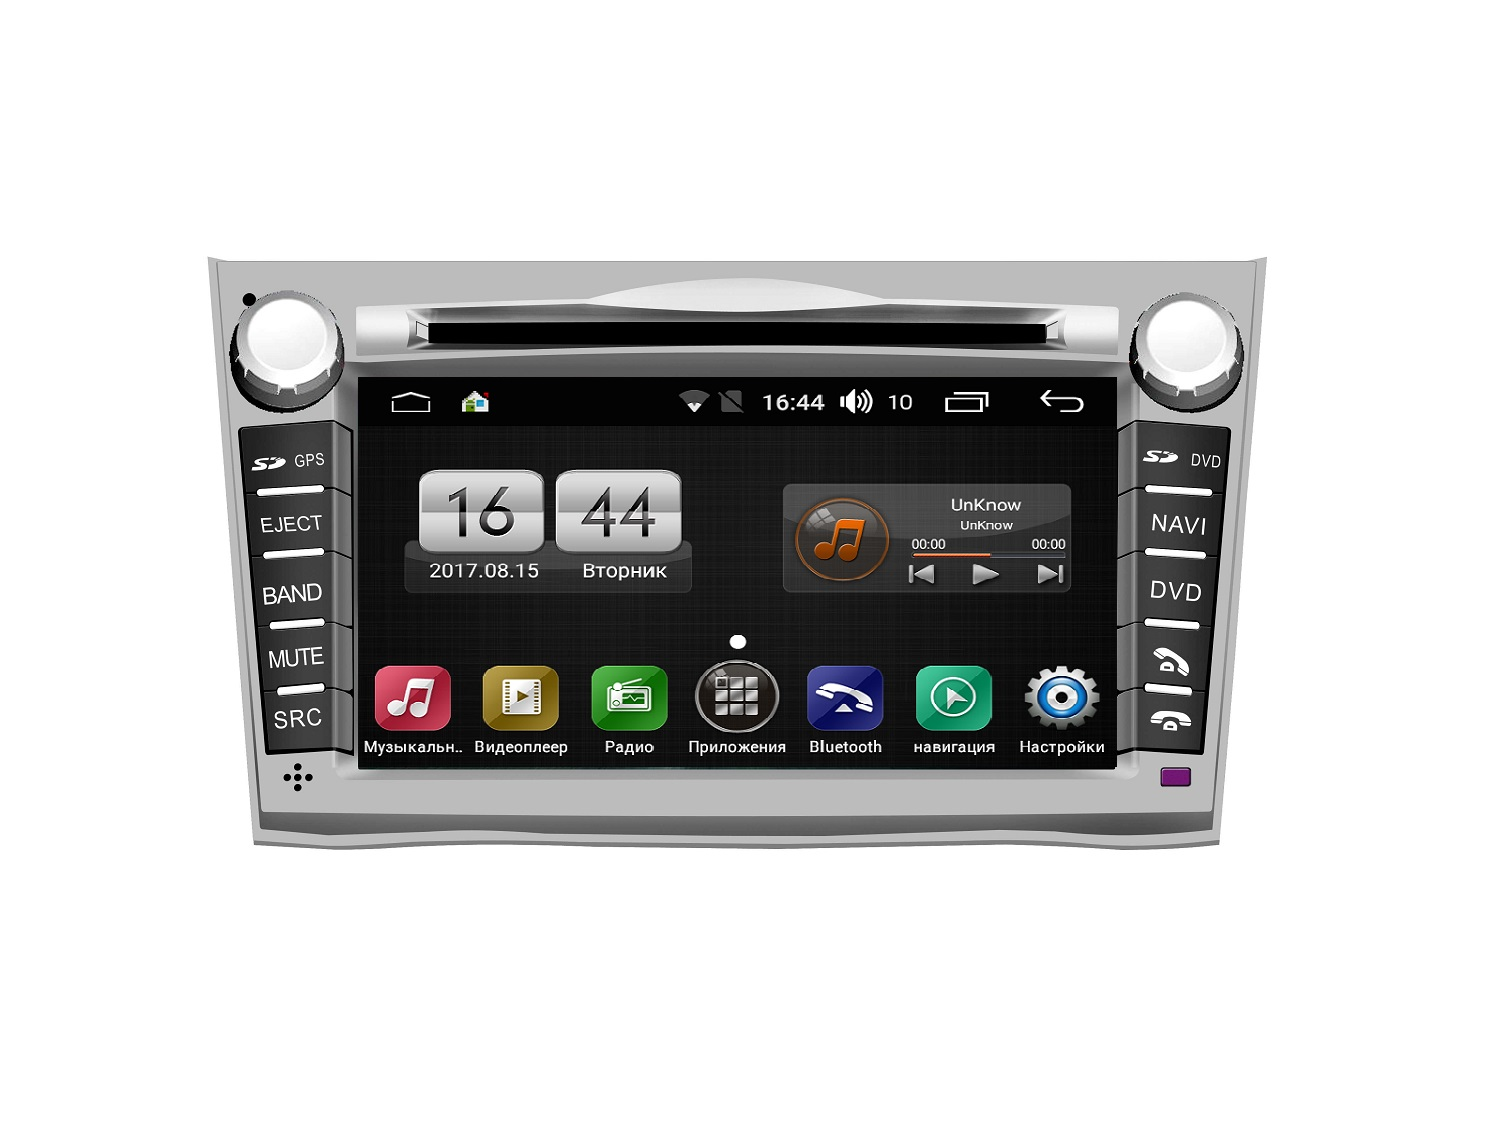 Штатная магнитола FarCar s170 для Subaru Legacy (2009-) Outback (2009-2014) на Android (L061) junsun 7 inch hd car gps navigation with fm bluetooth avin multi languages europe sat nav truck car gps navigator with free maps